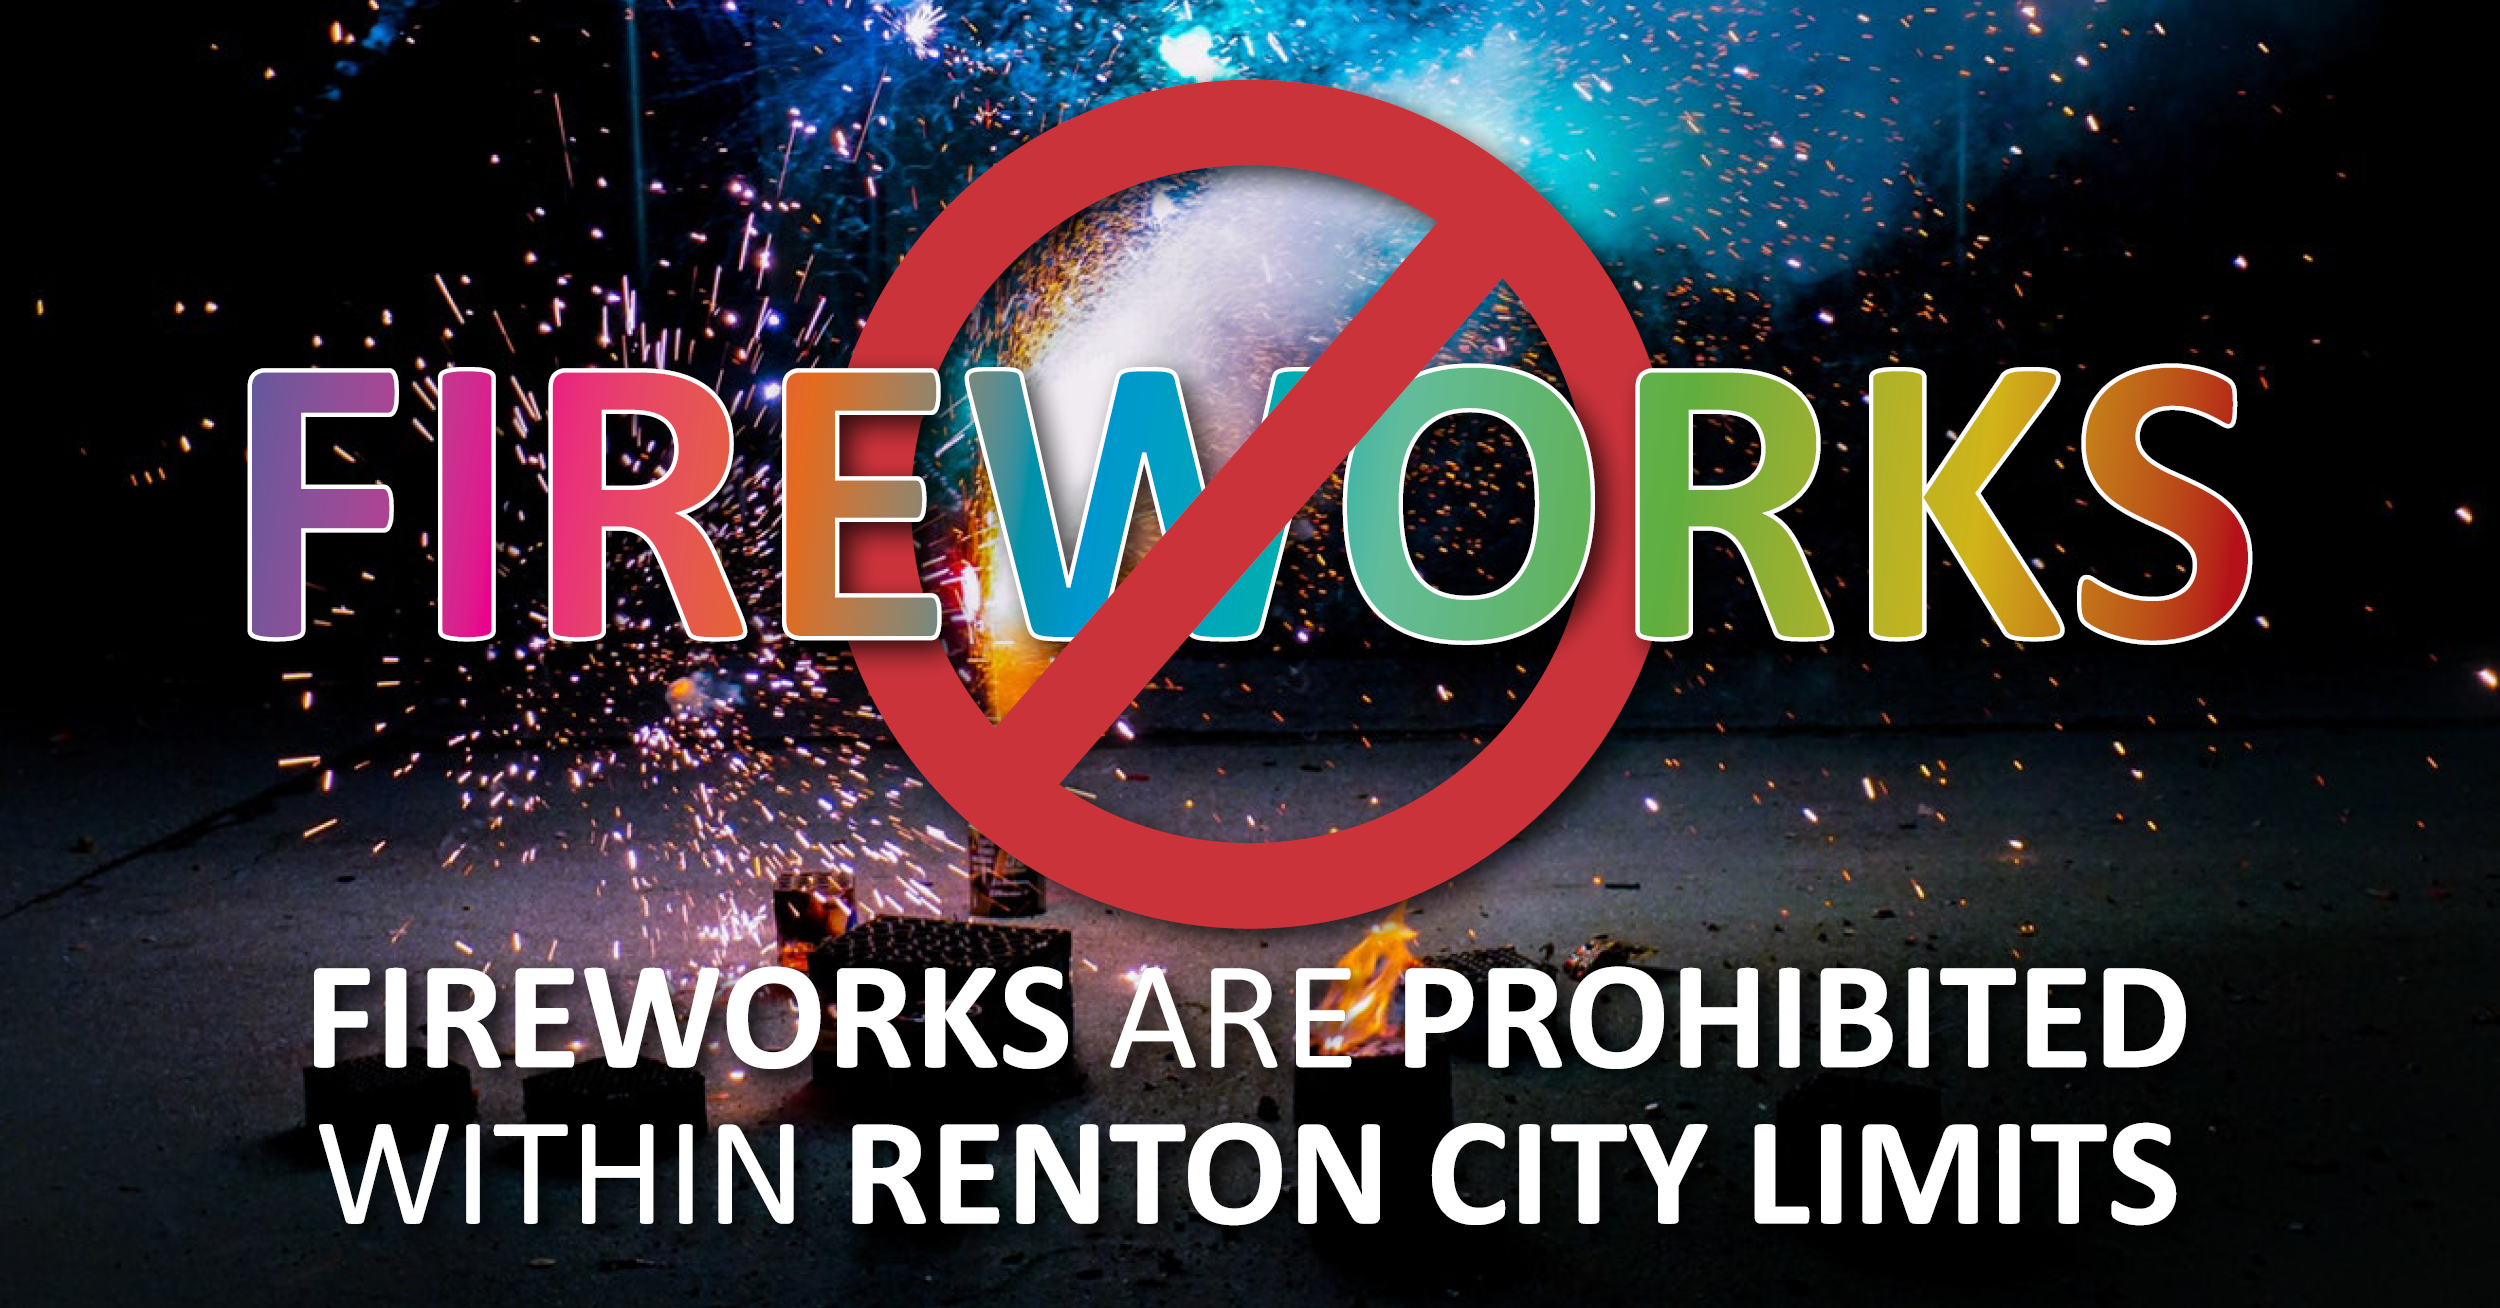 Fireworks are Prohibited in Renton City Limits